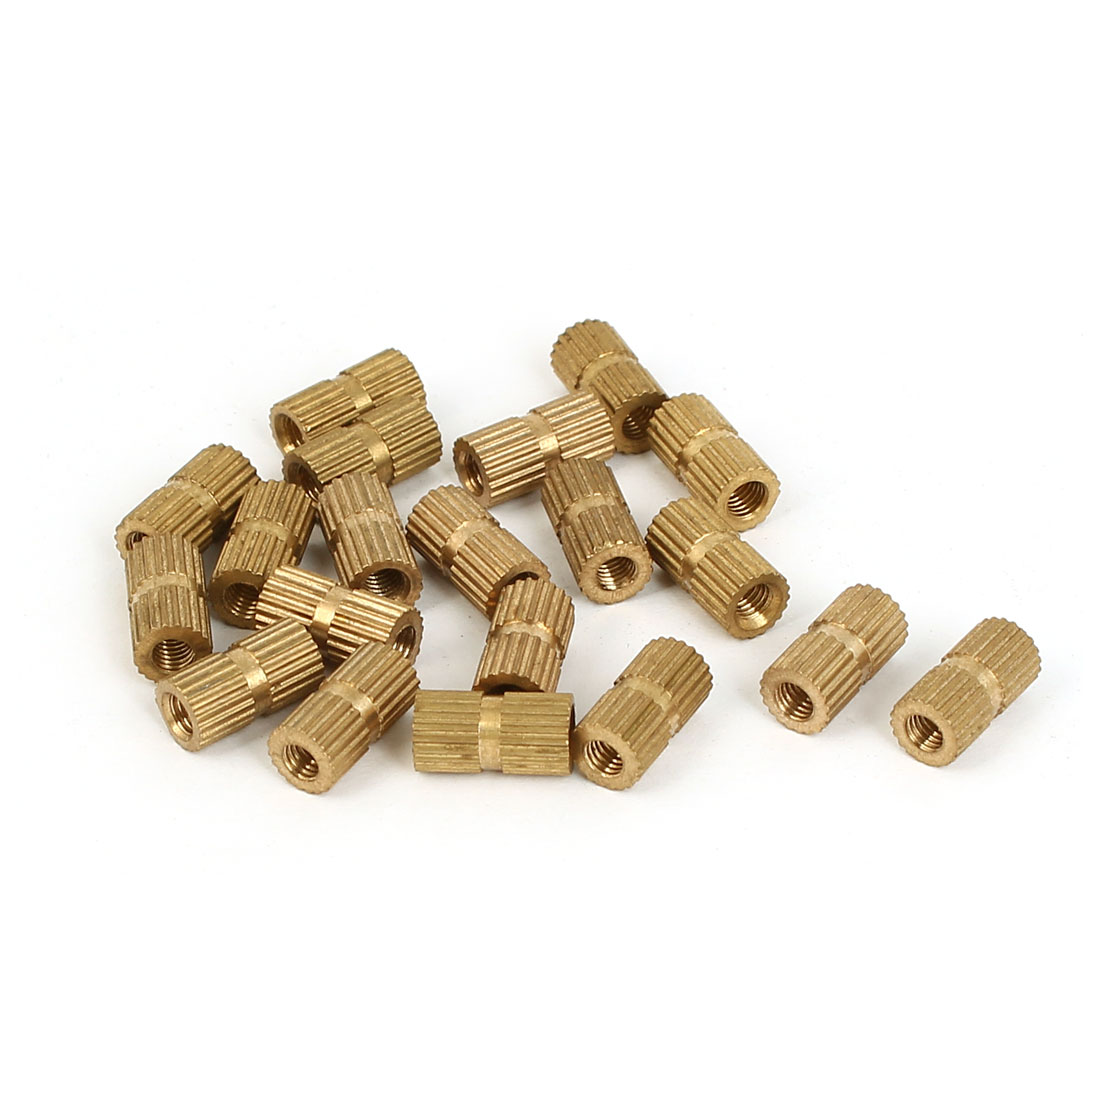 M3 x 5mm x 10mm Female Threaded Insert Embedded Brass Knurled Nuts Fastener 20 Pcs